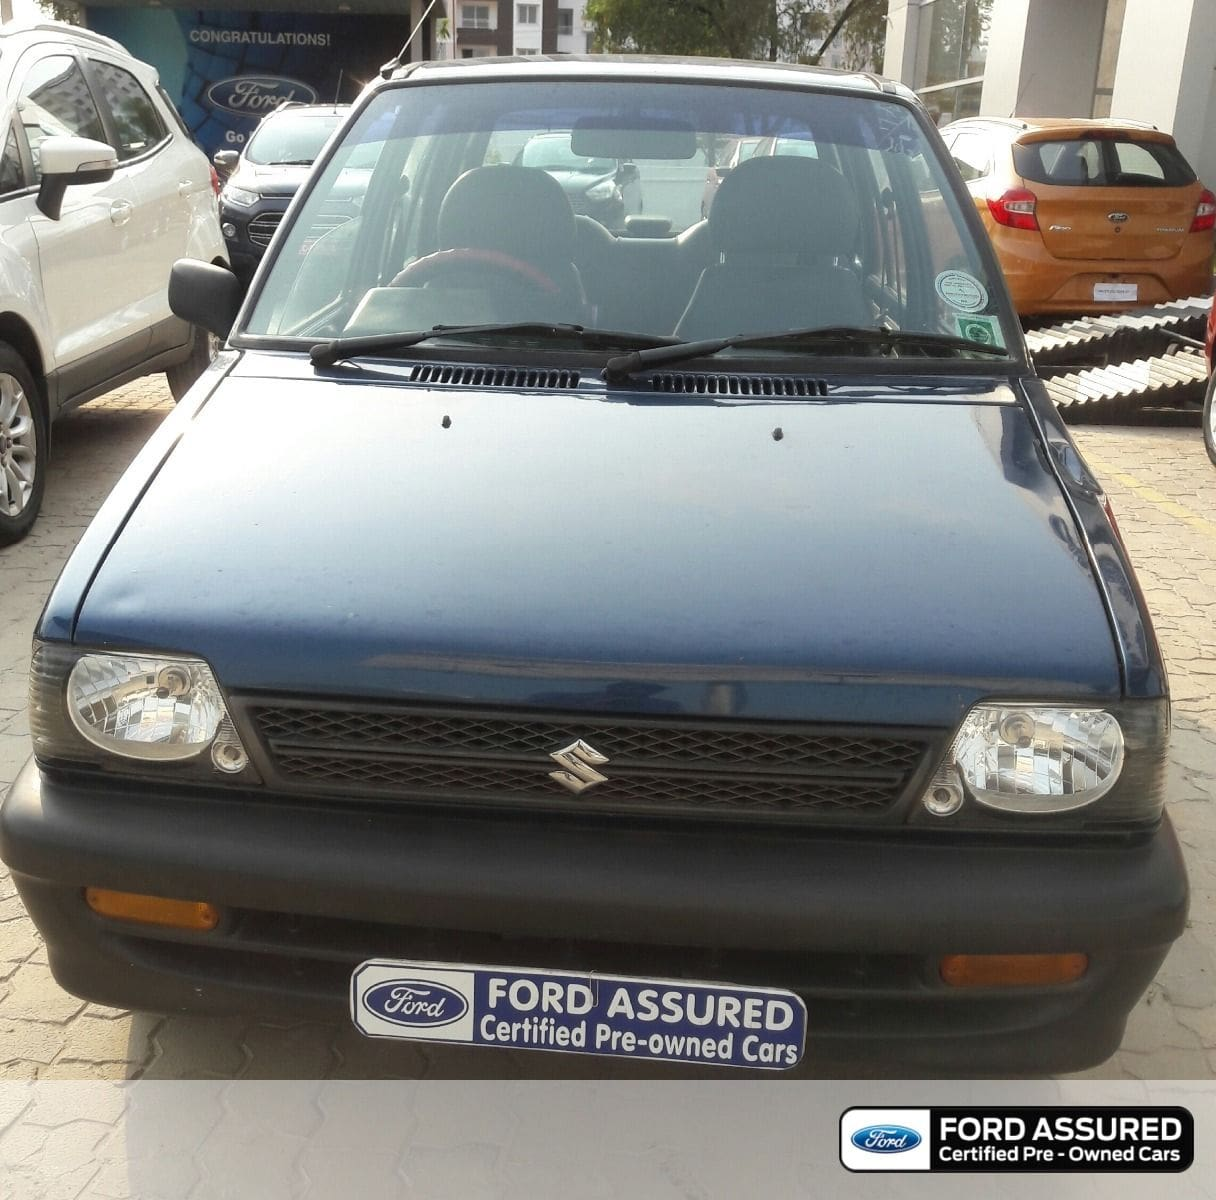 value proposition of maruti suzuki In 2001, maruti true value, selling and buying used cars was launched in october of the same year the maruti versa was launched in 2002, esteem diesel was introduced maruti suzuki launched maruti finance in january 2002.